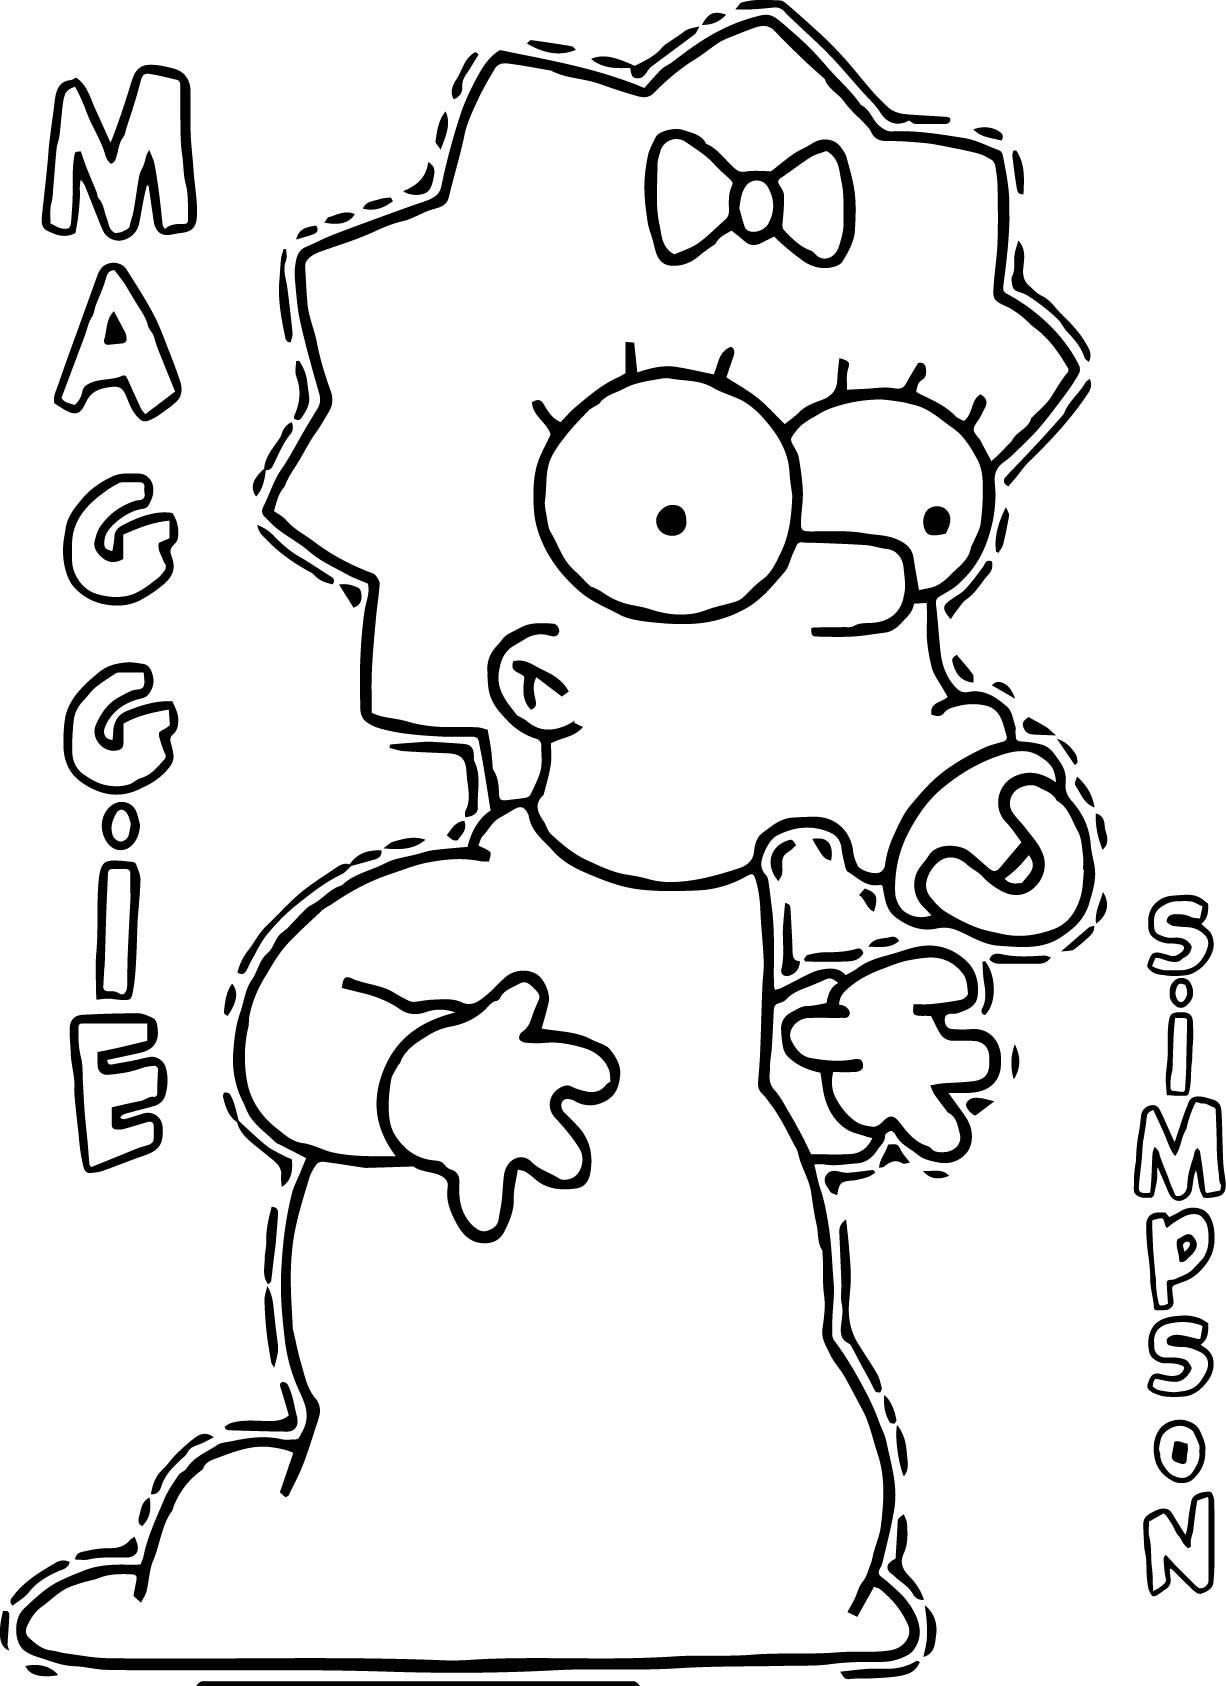 Maggie the simpsons coloring page for Coloring pages simpsons